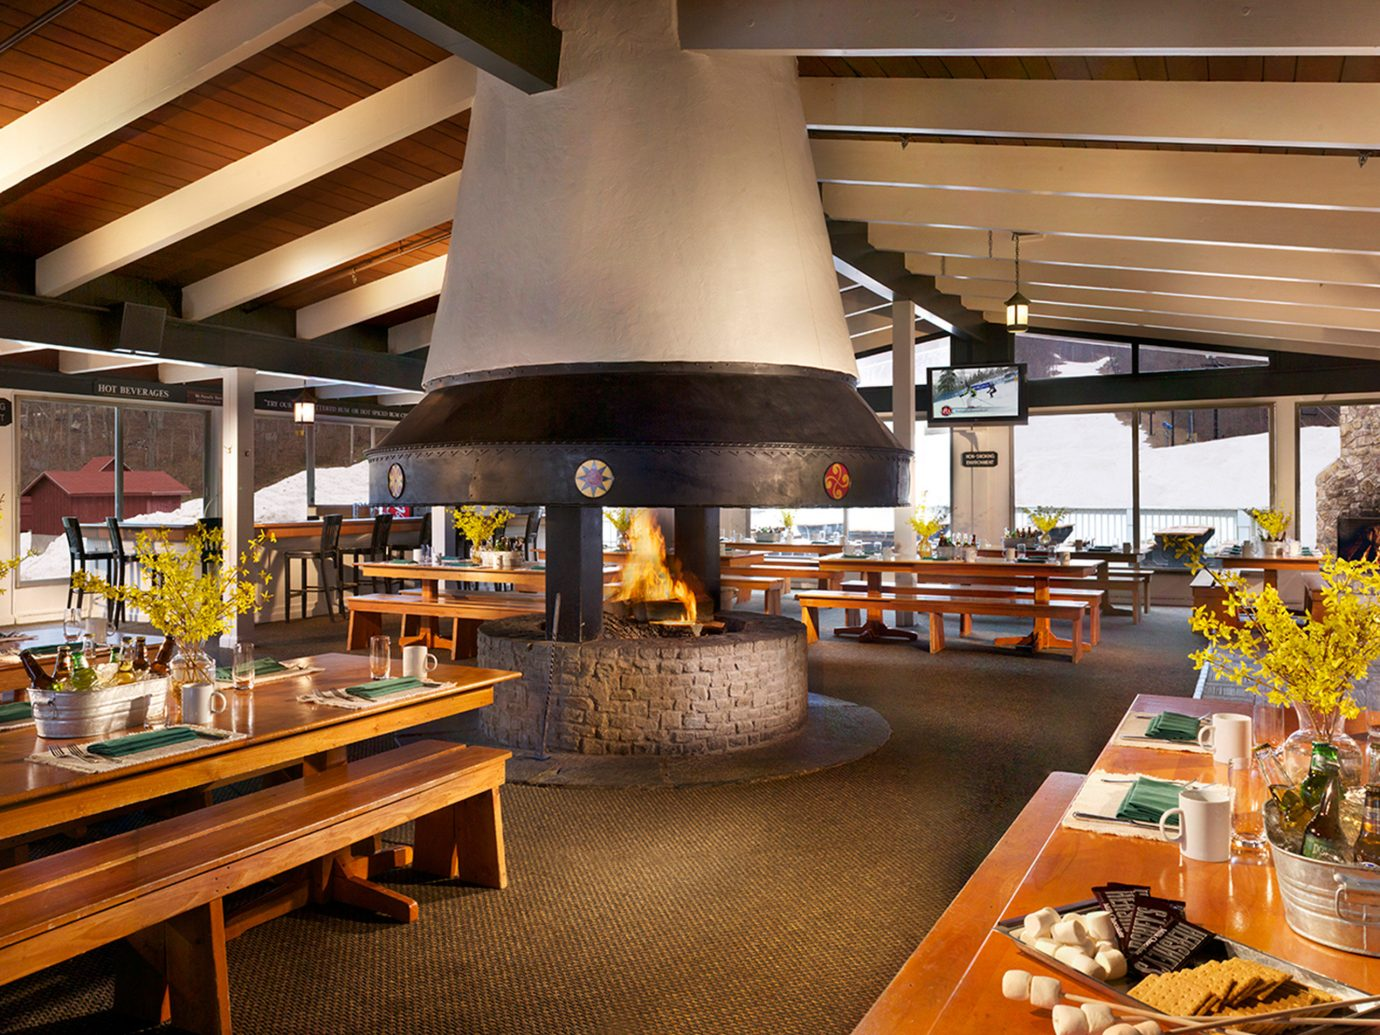 Country Dining Drink Eat Historic Lounge Romance Trip Ideas Weekend Getaways indoor table ceiling meal restaurant interior design cafeteria wood Lobby buffet Design bakery food court